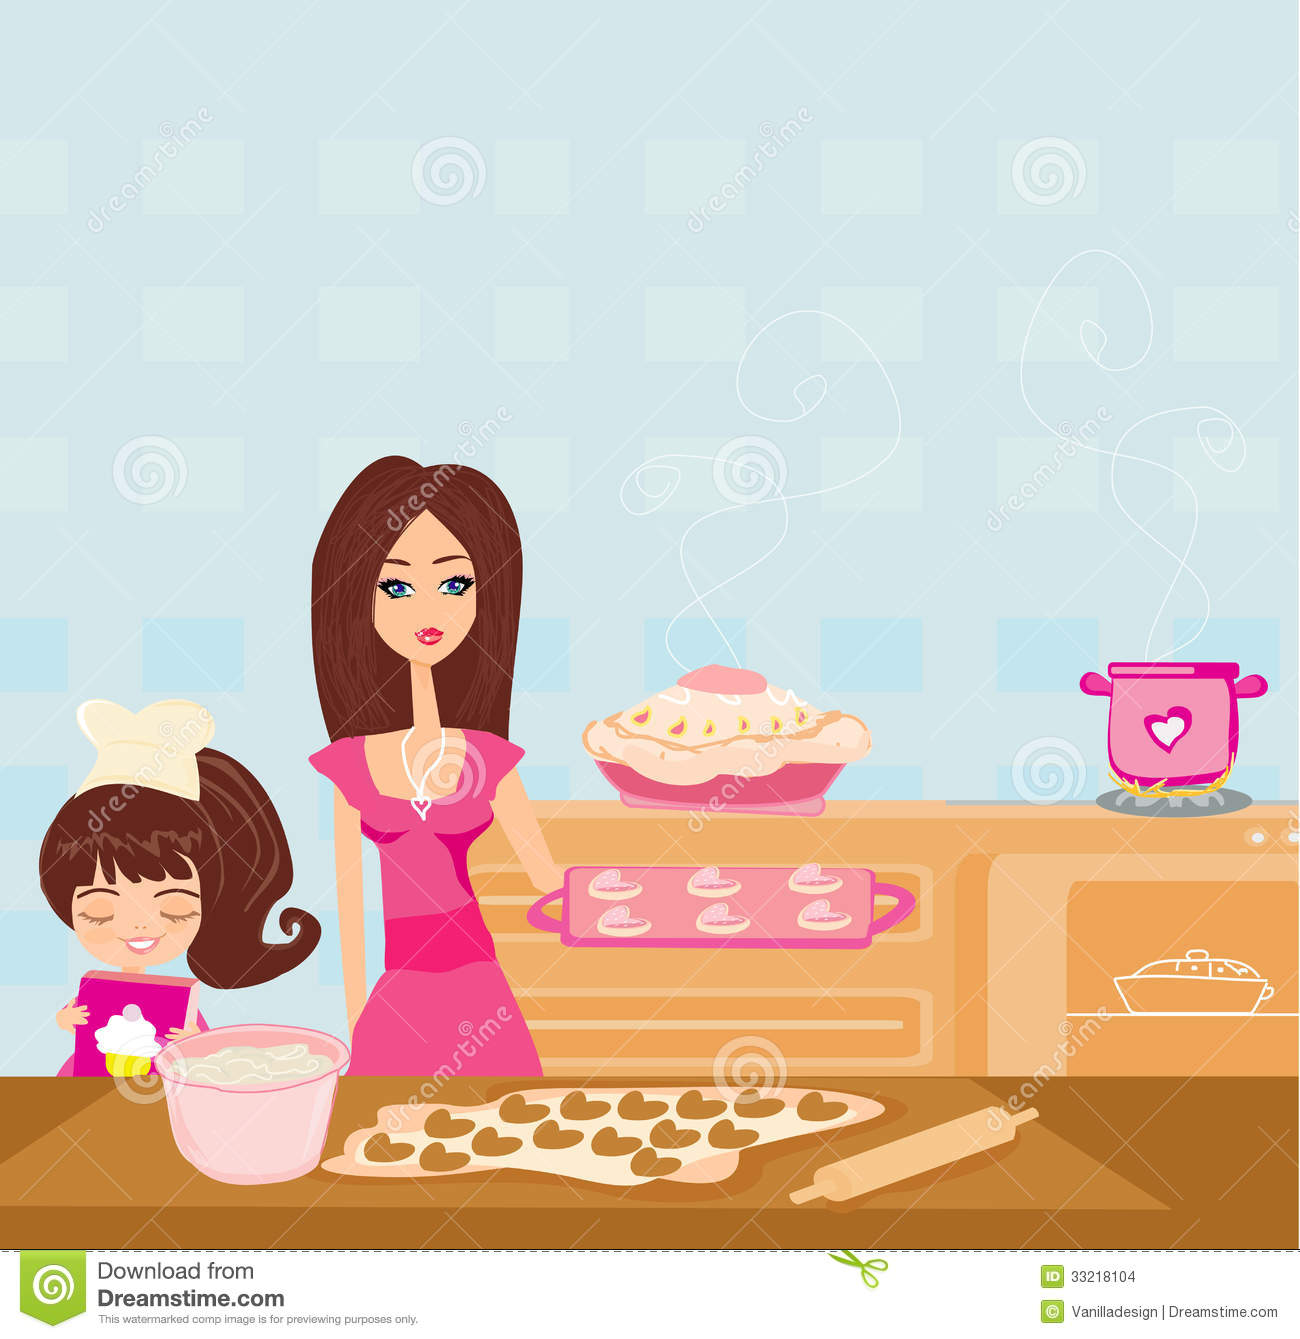 Baking clipart mother daughter The Kitchen Mother Mother kid